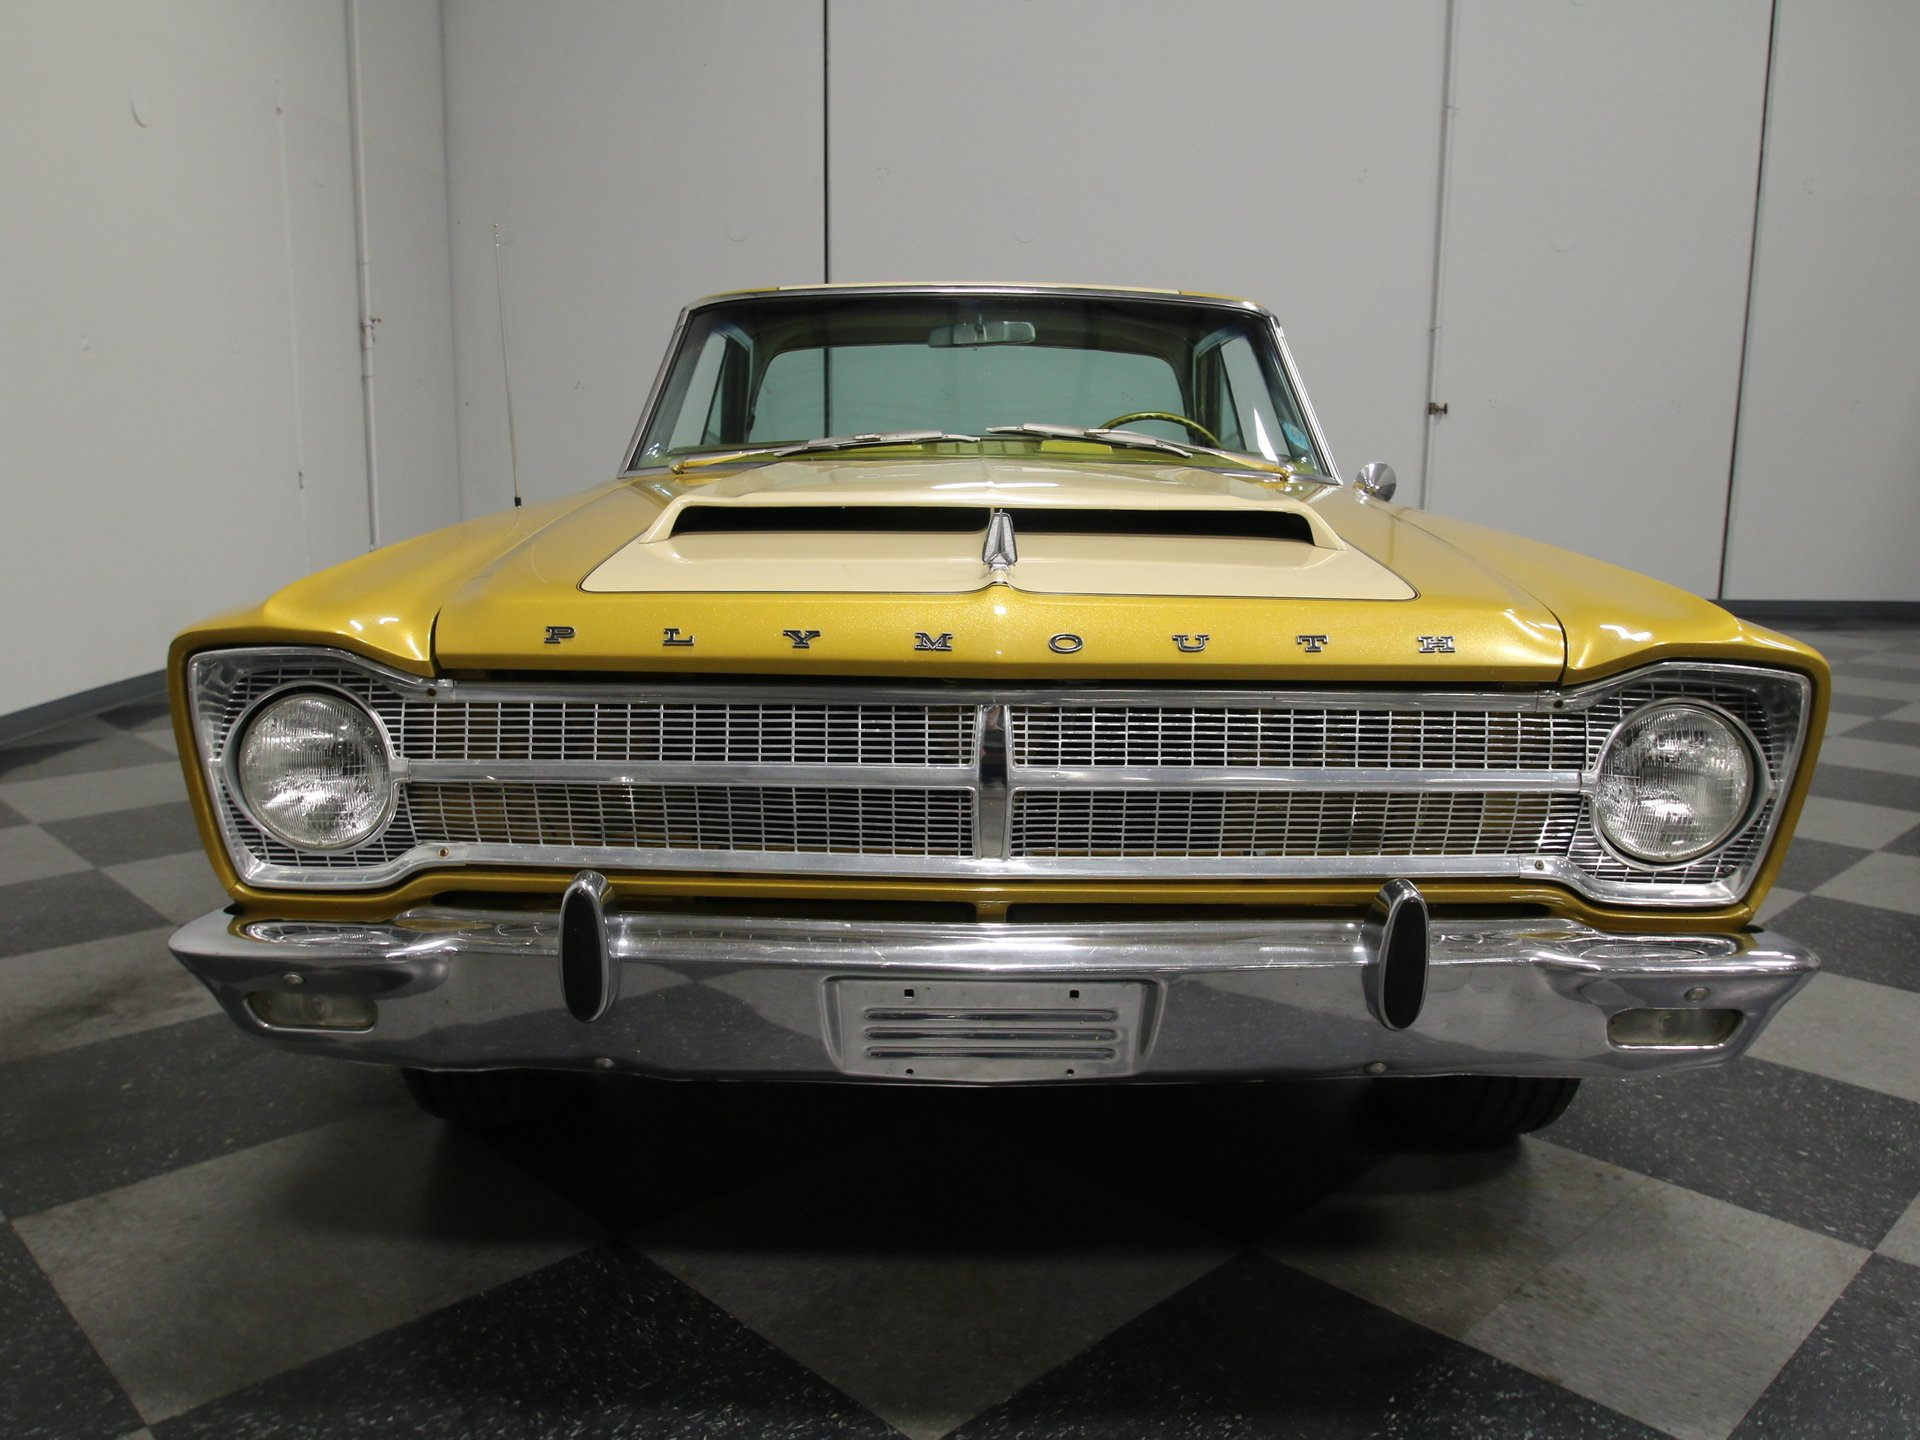 1965 Plymouth Belvedere Streetside Classics The Nations Trusted 1960s Cars View 360